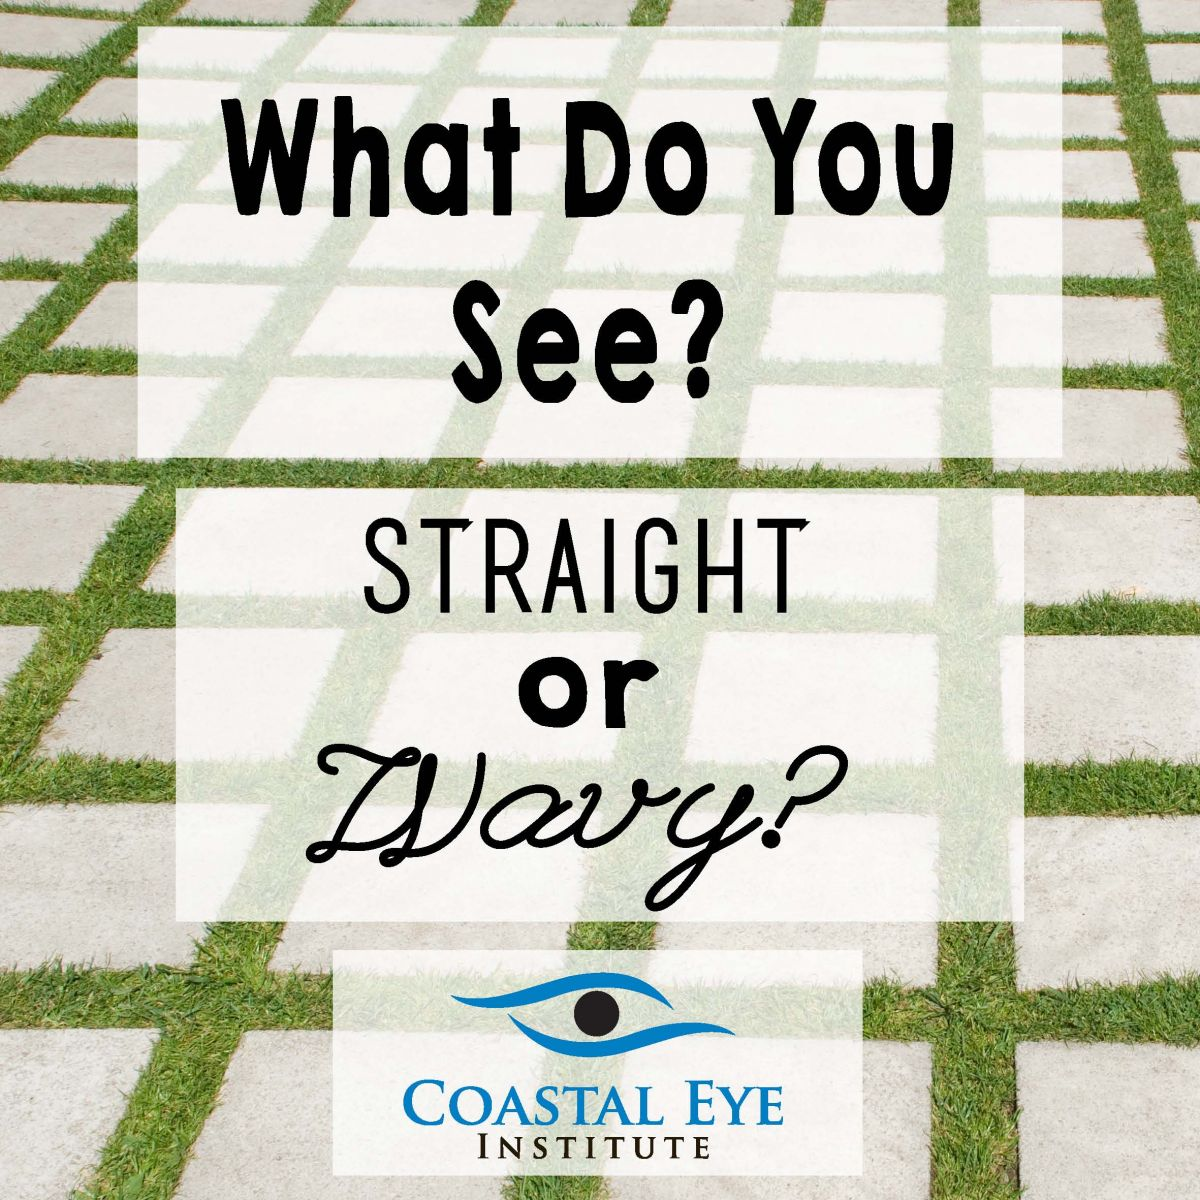 What do you see, straight or wavy image